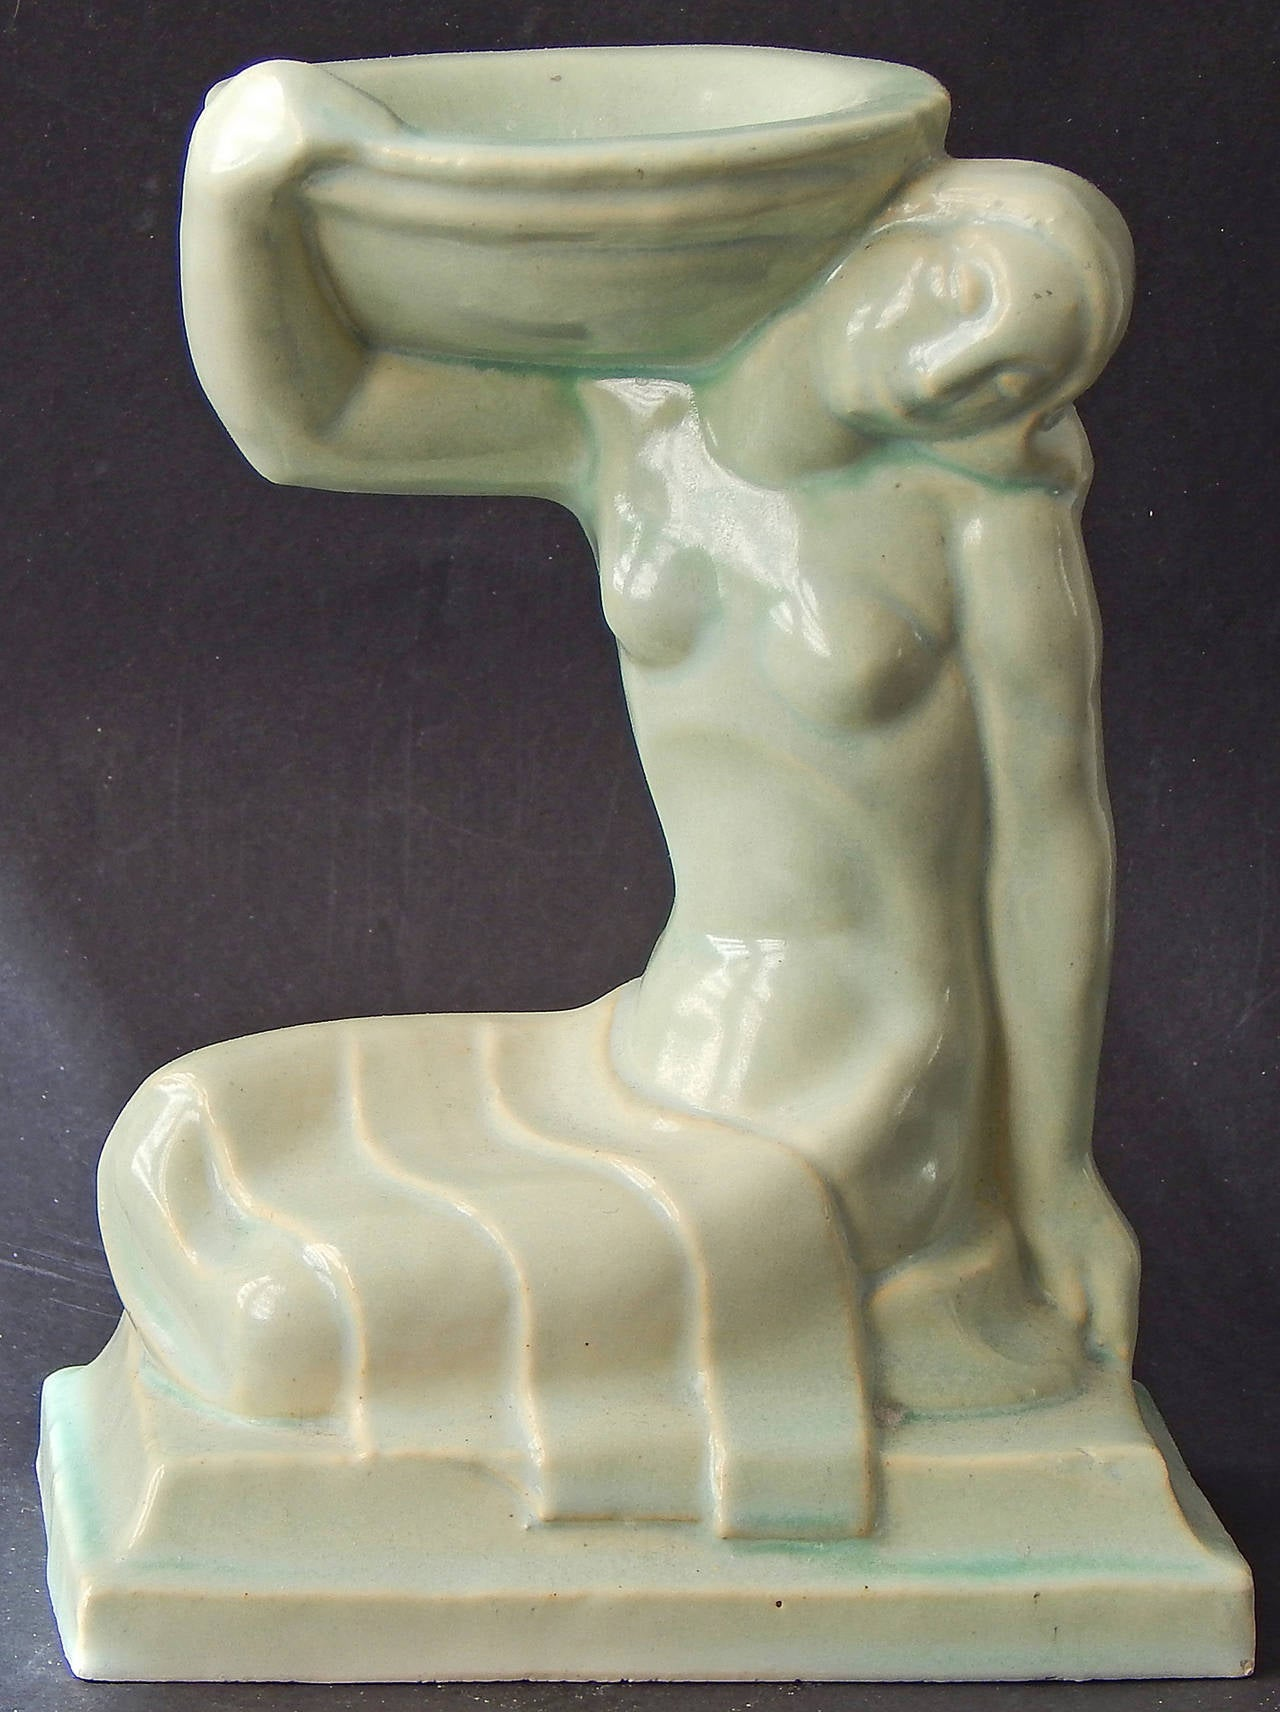 A classic and rare example of Art Deco sculpture, this piece was designed by Leon Victor Solon, an important color theorist and designer who became the artistic director of the American Encaustic Tile Company (AETCO) in 1922.  American Encaustic